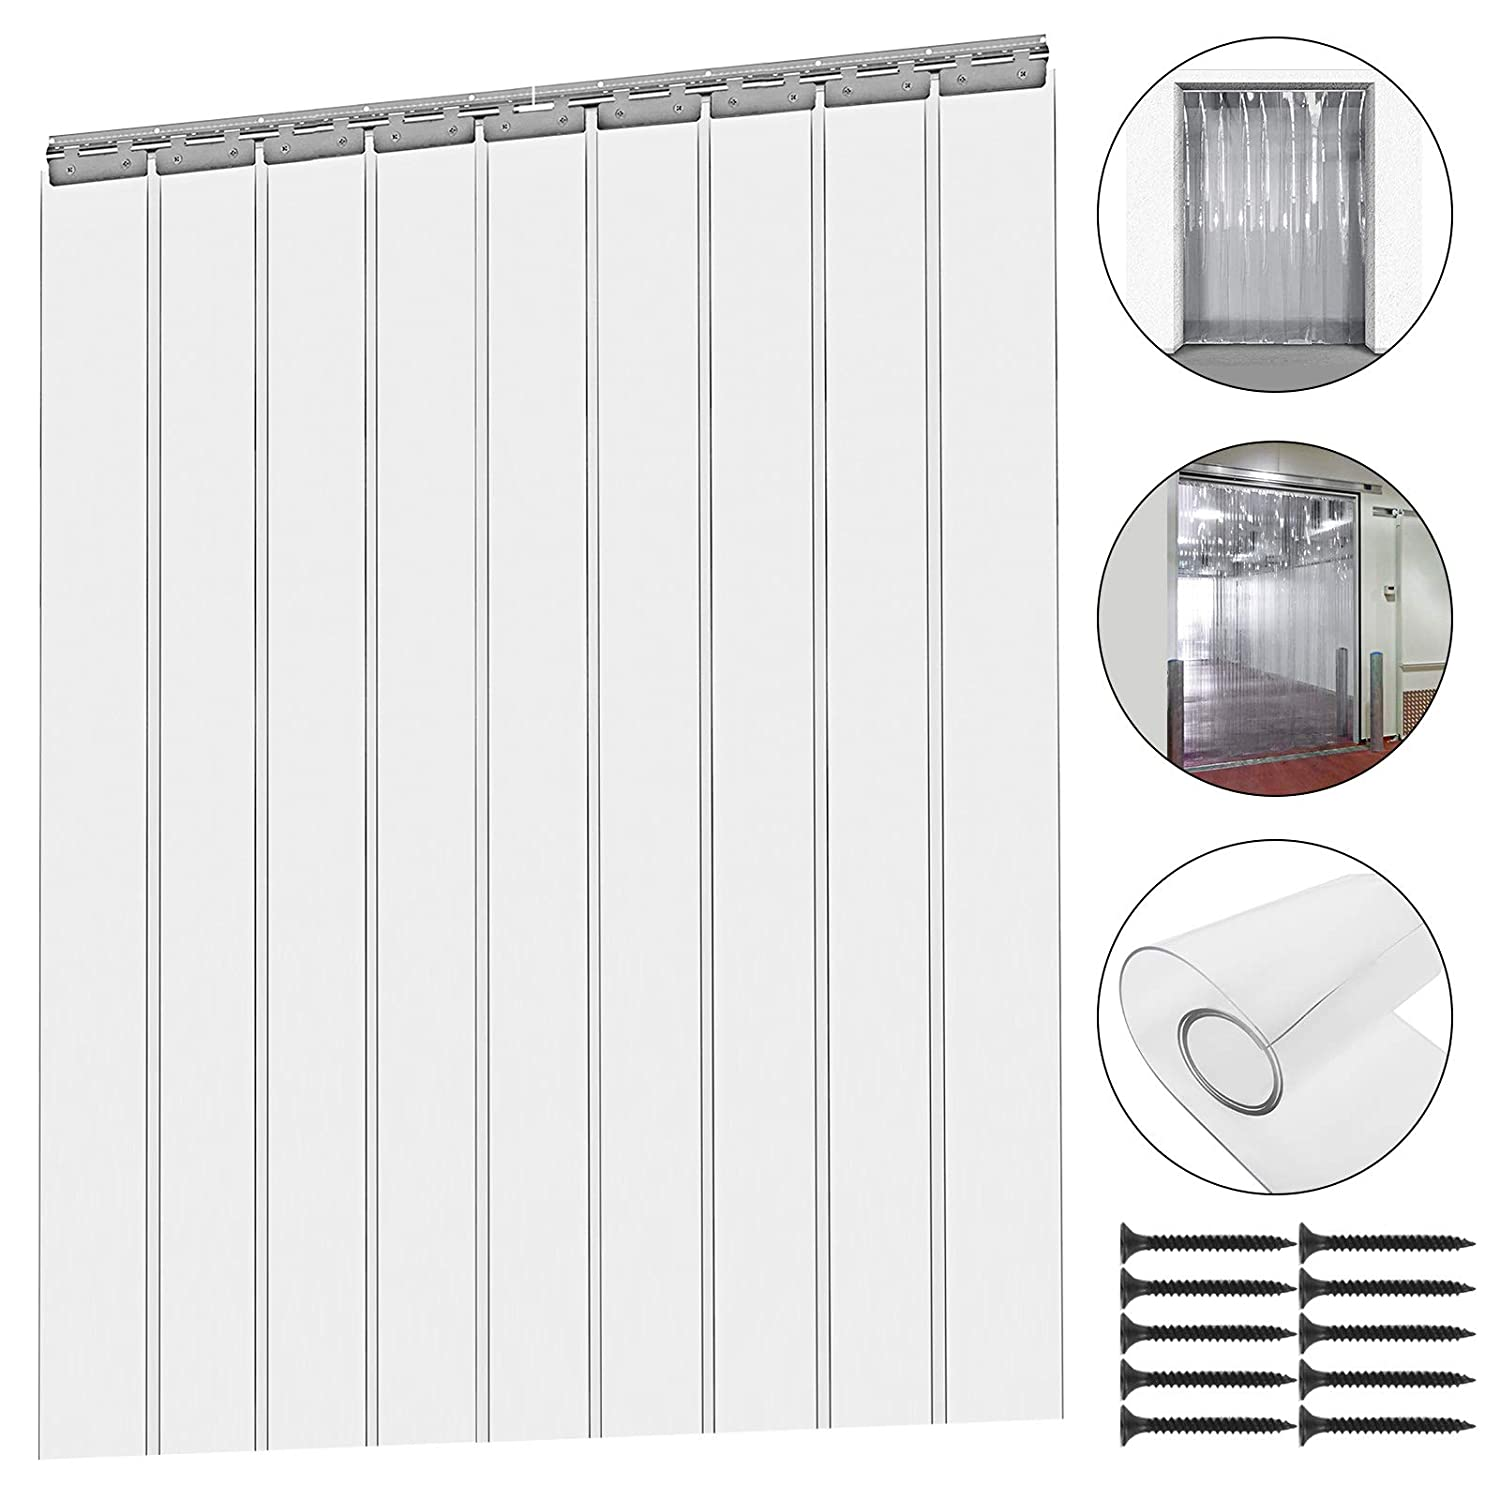 Mophorn 9 Pcs Plastic Curtain Strips 78 Inch Height X 6 Inch Width Strip Door Curtain 2MM Thickness Clear Anti Scratch Curtain Strip for Freezer Doors Warehouse Doors (9 Pcs 78 Inch Height)